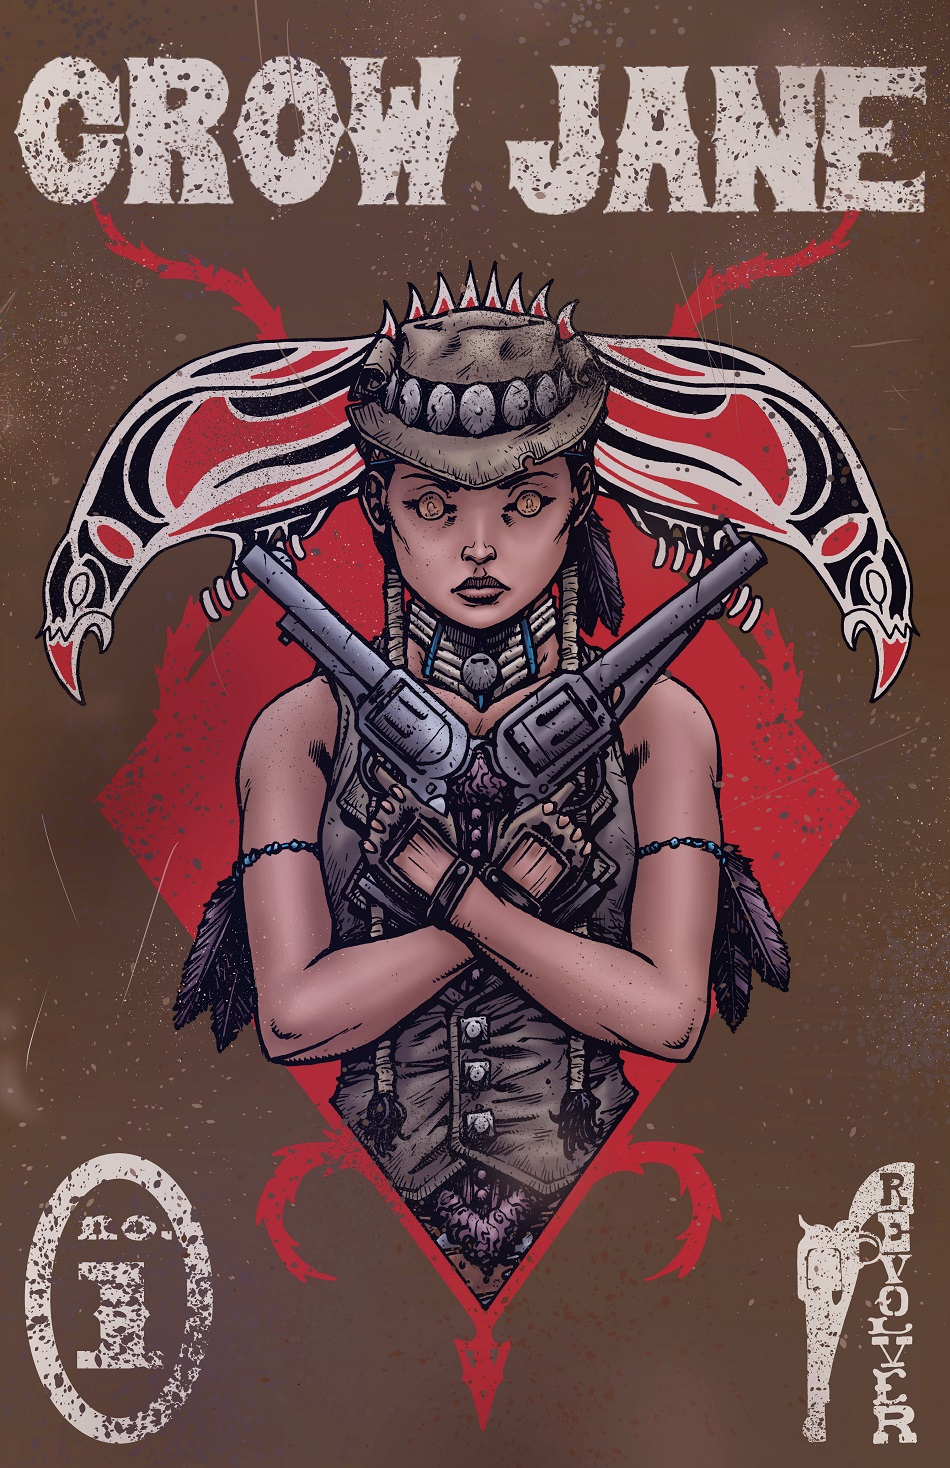 Crow Jane: The Season of Revenge book 1 cover